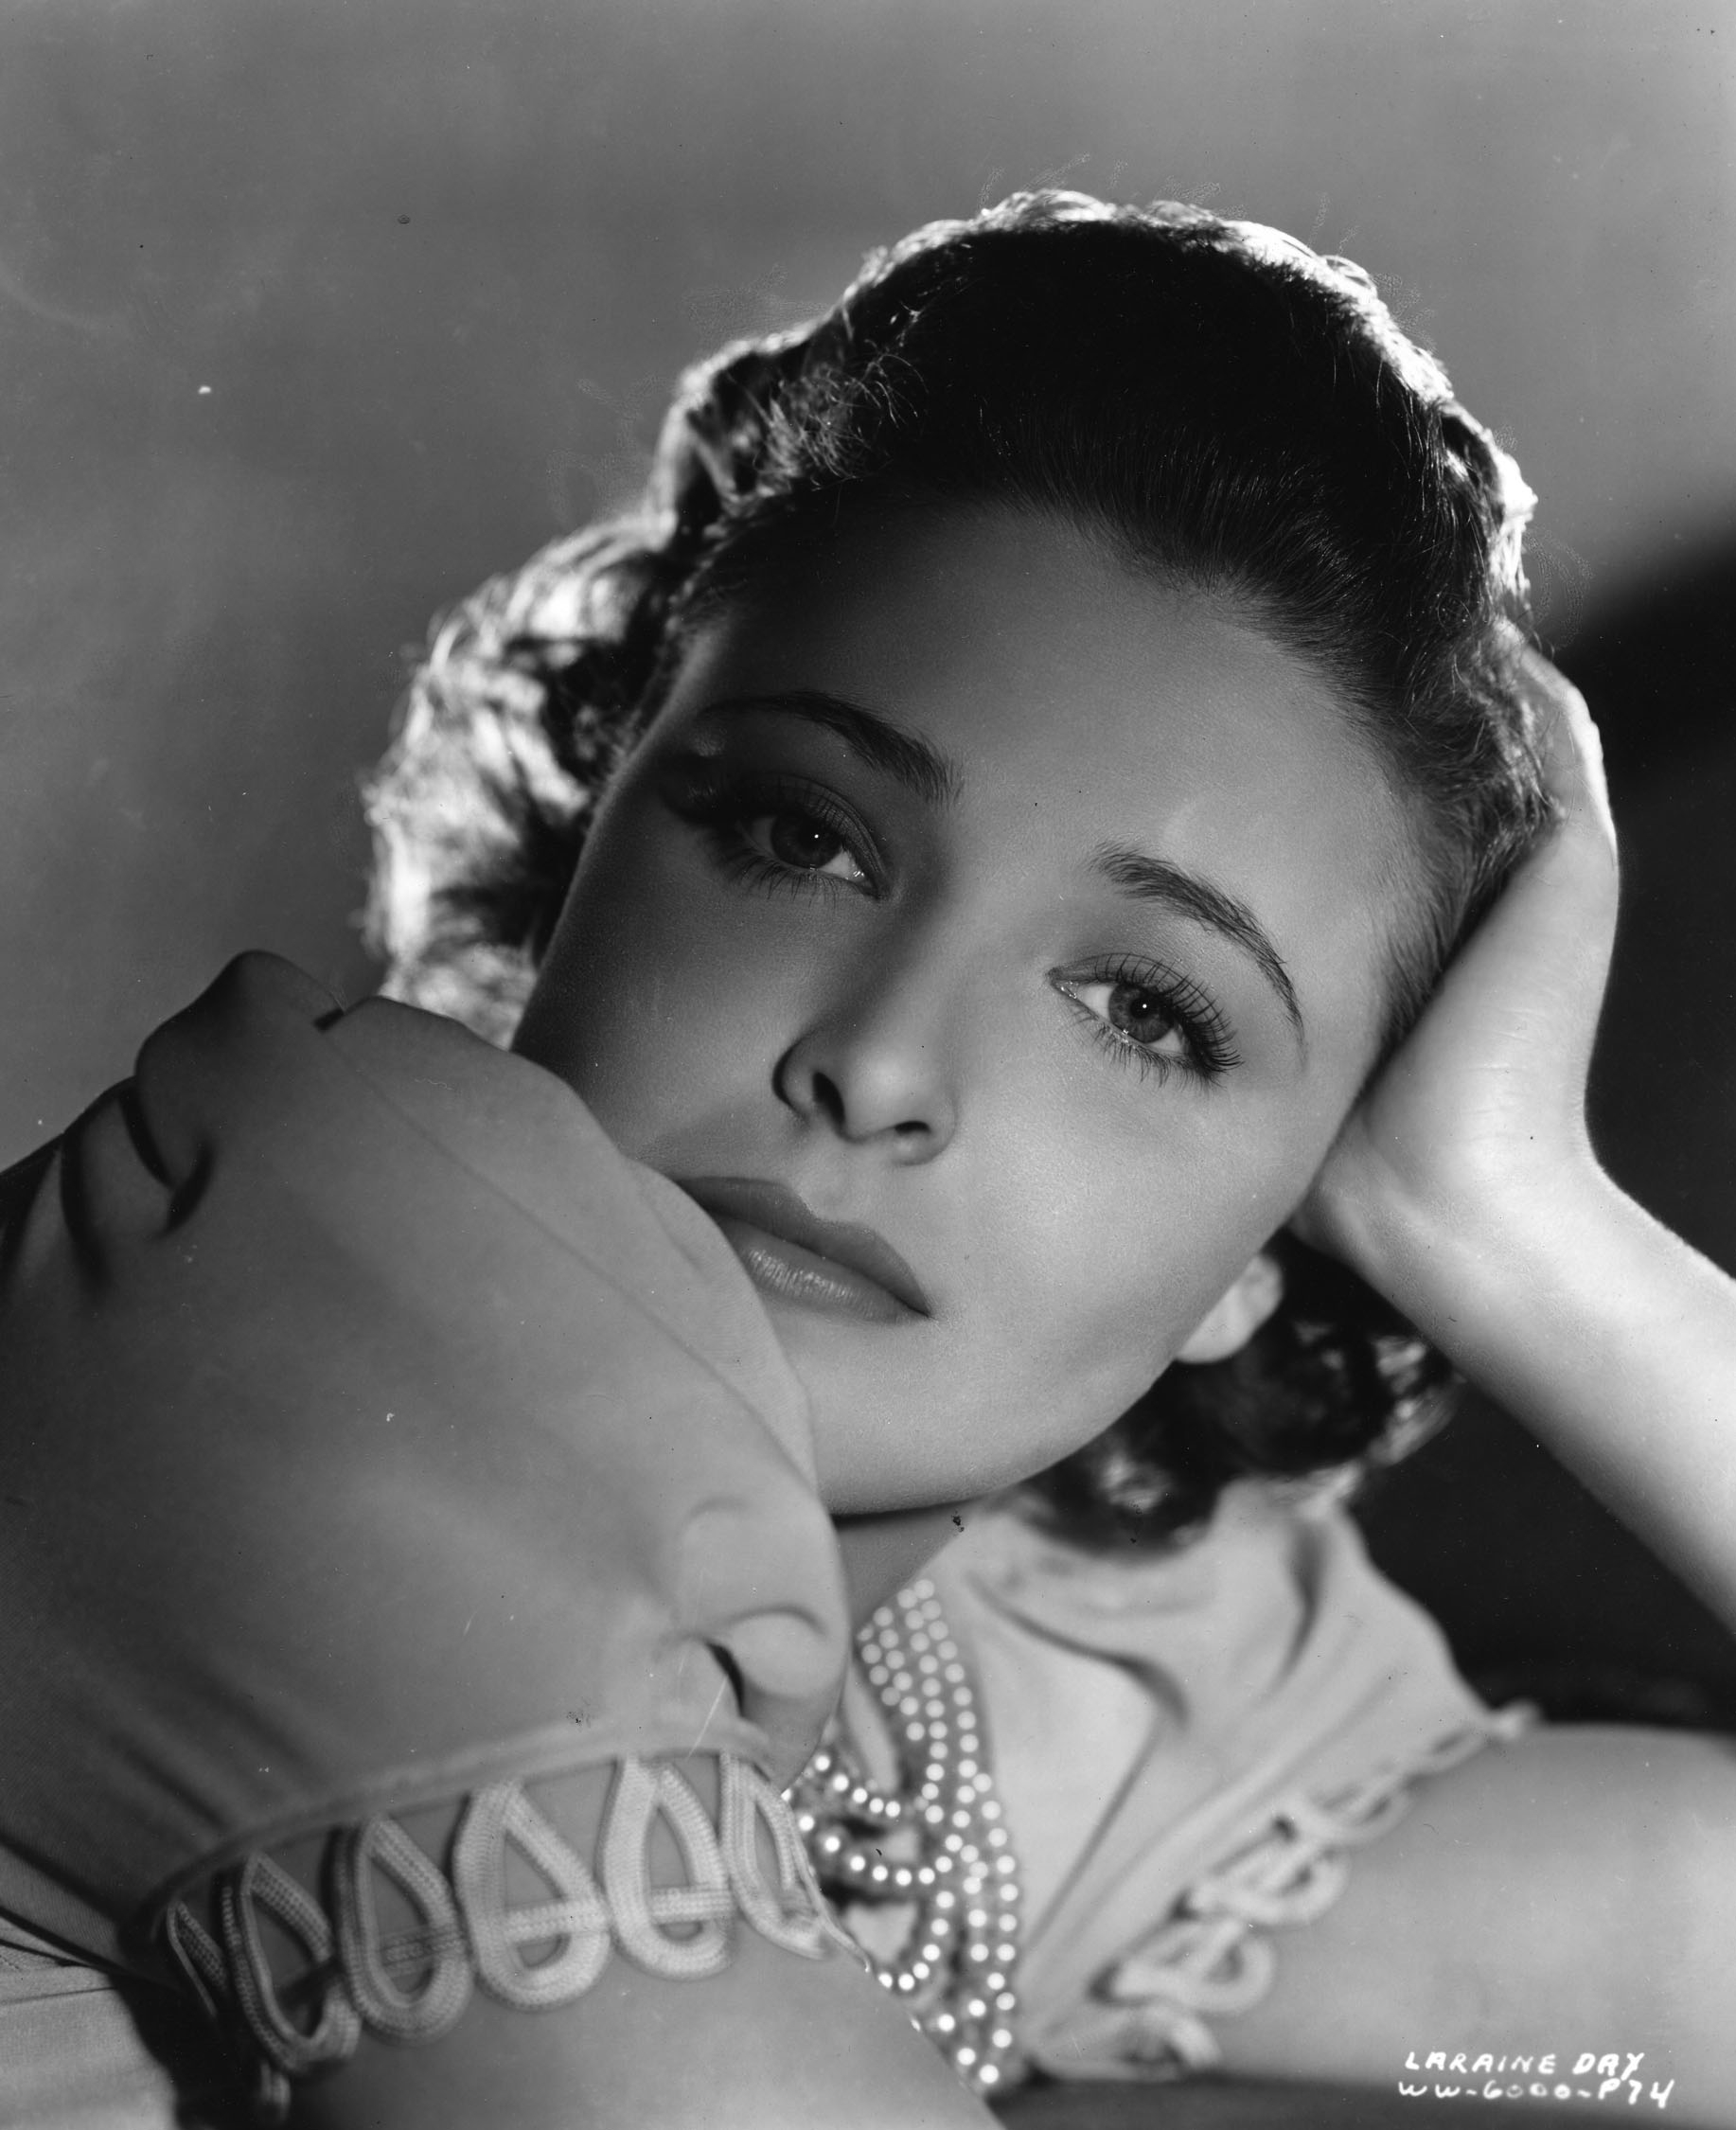 Portrait of Laraine Day